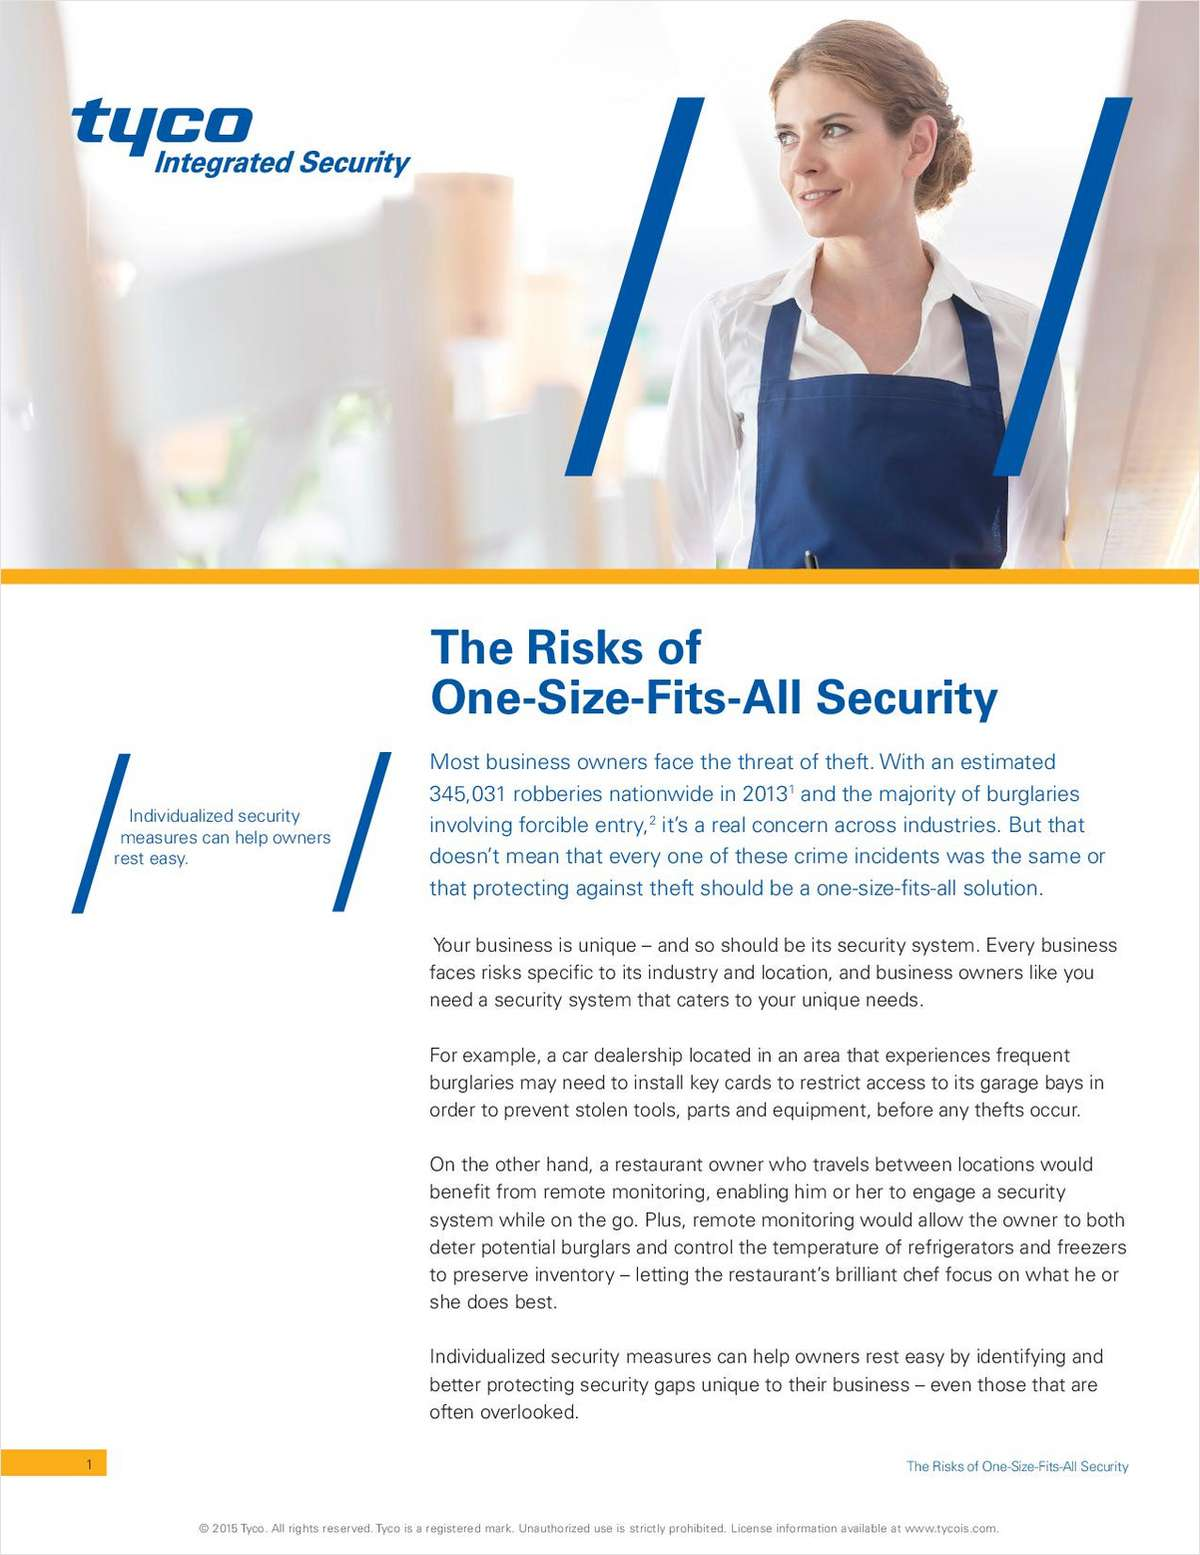 The Risks of One-Size-Fits-All Security